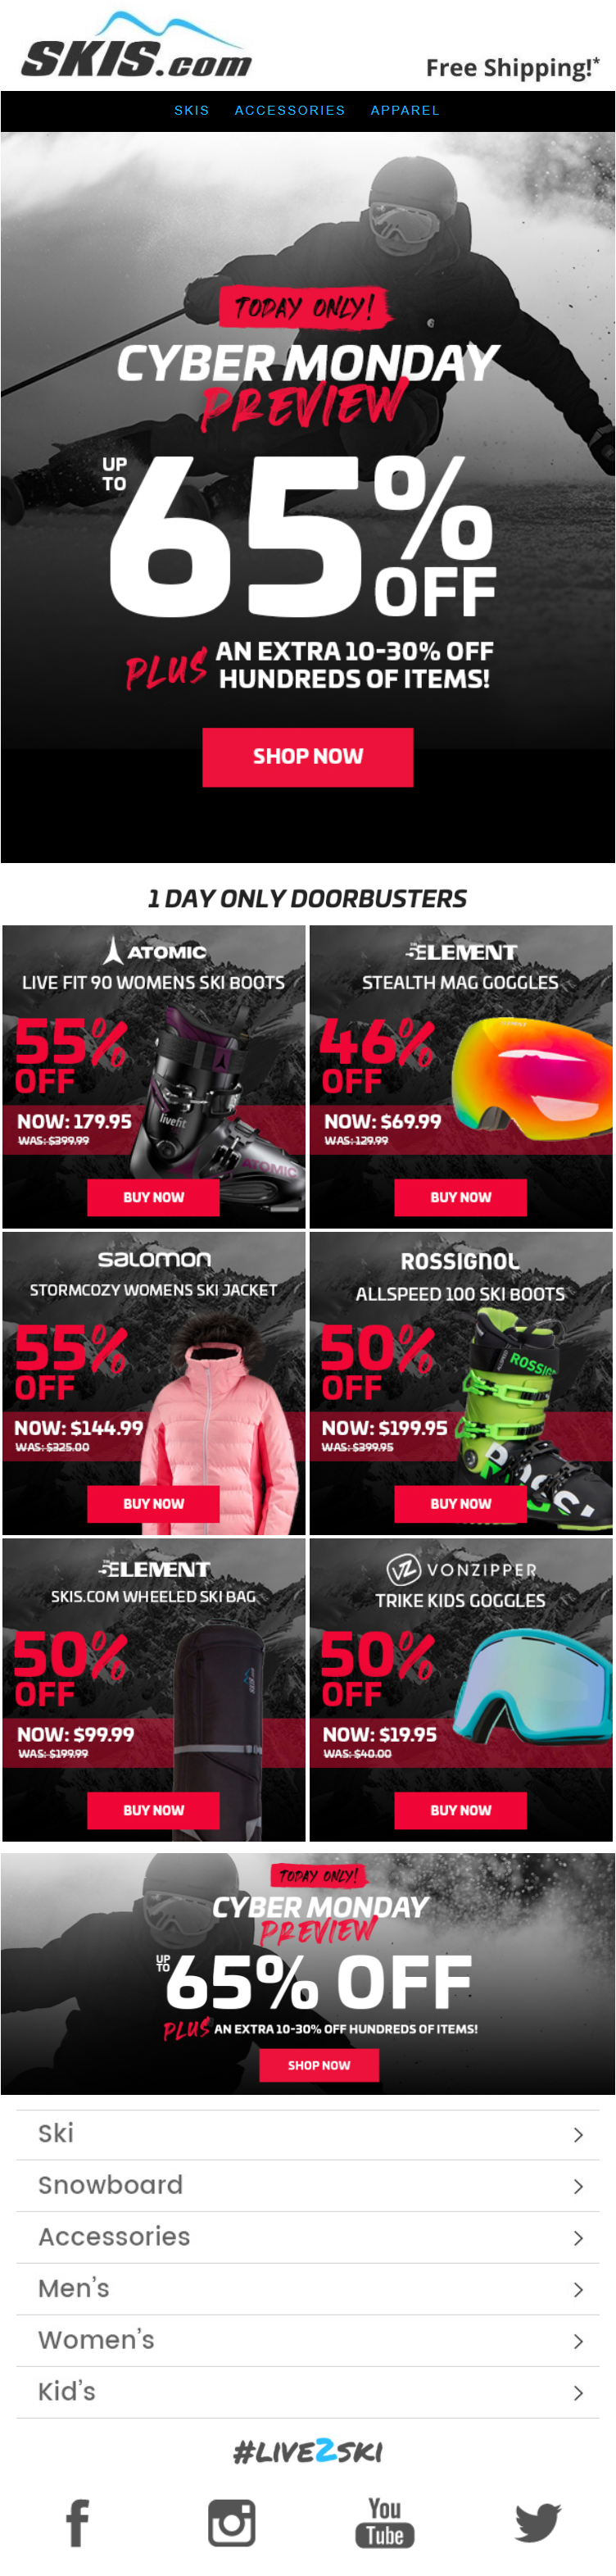 skis-com-preview-cyber-monday-now-shop-hundreds-of-deals-before-anyone-else